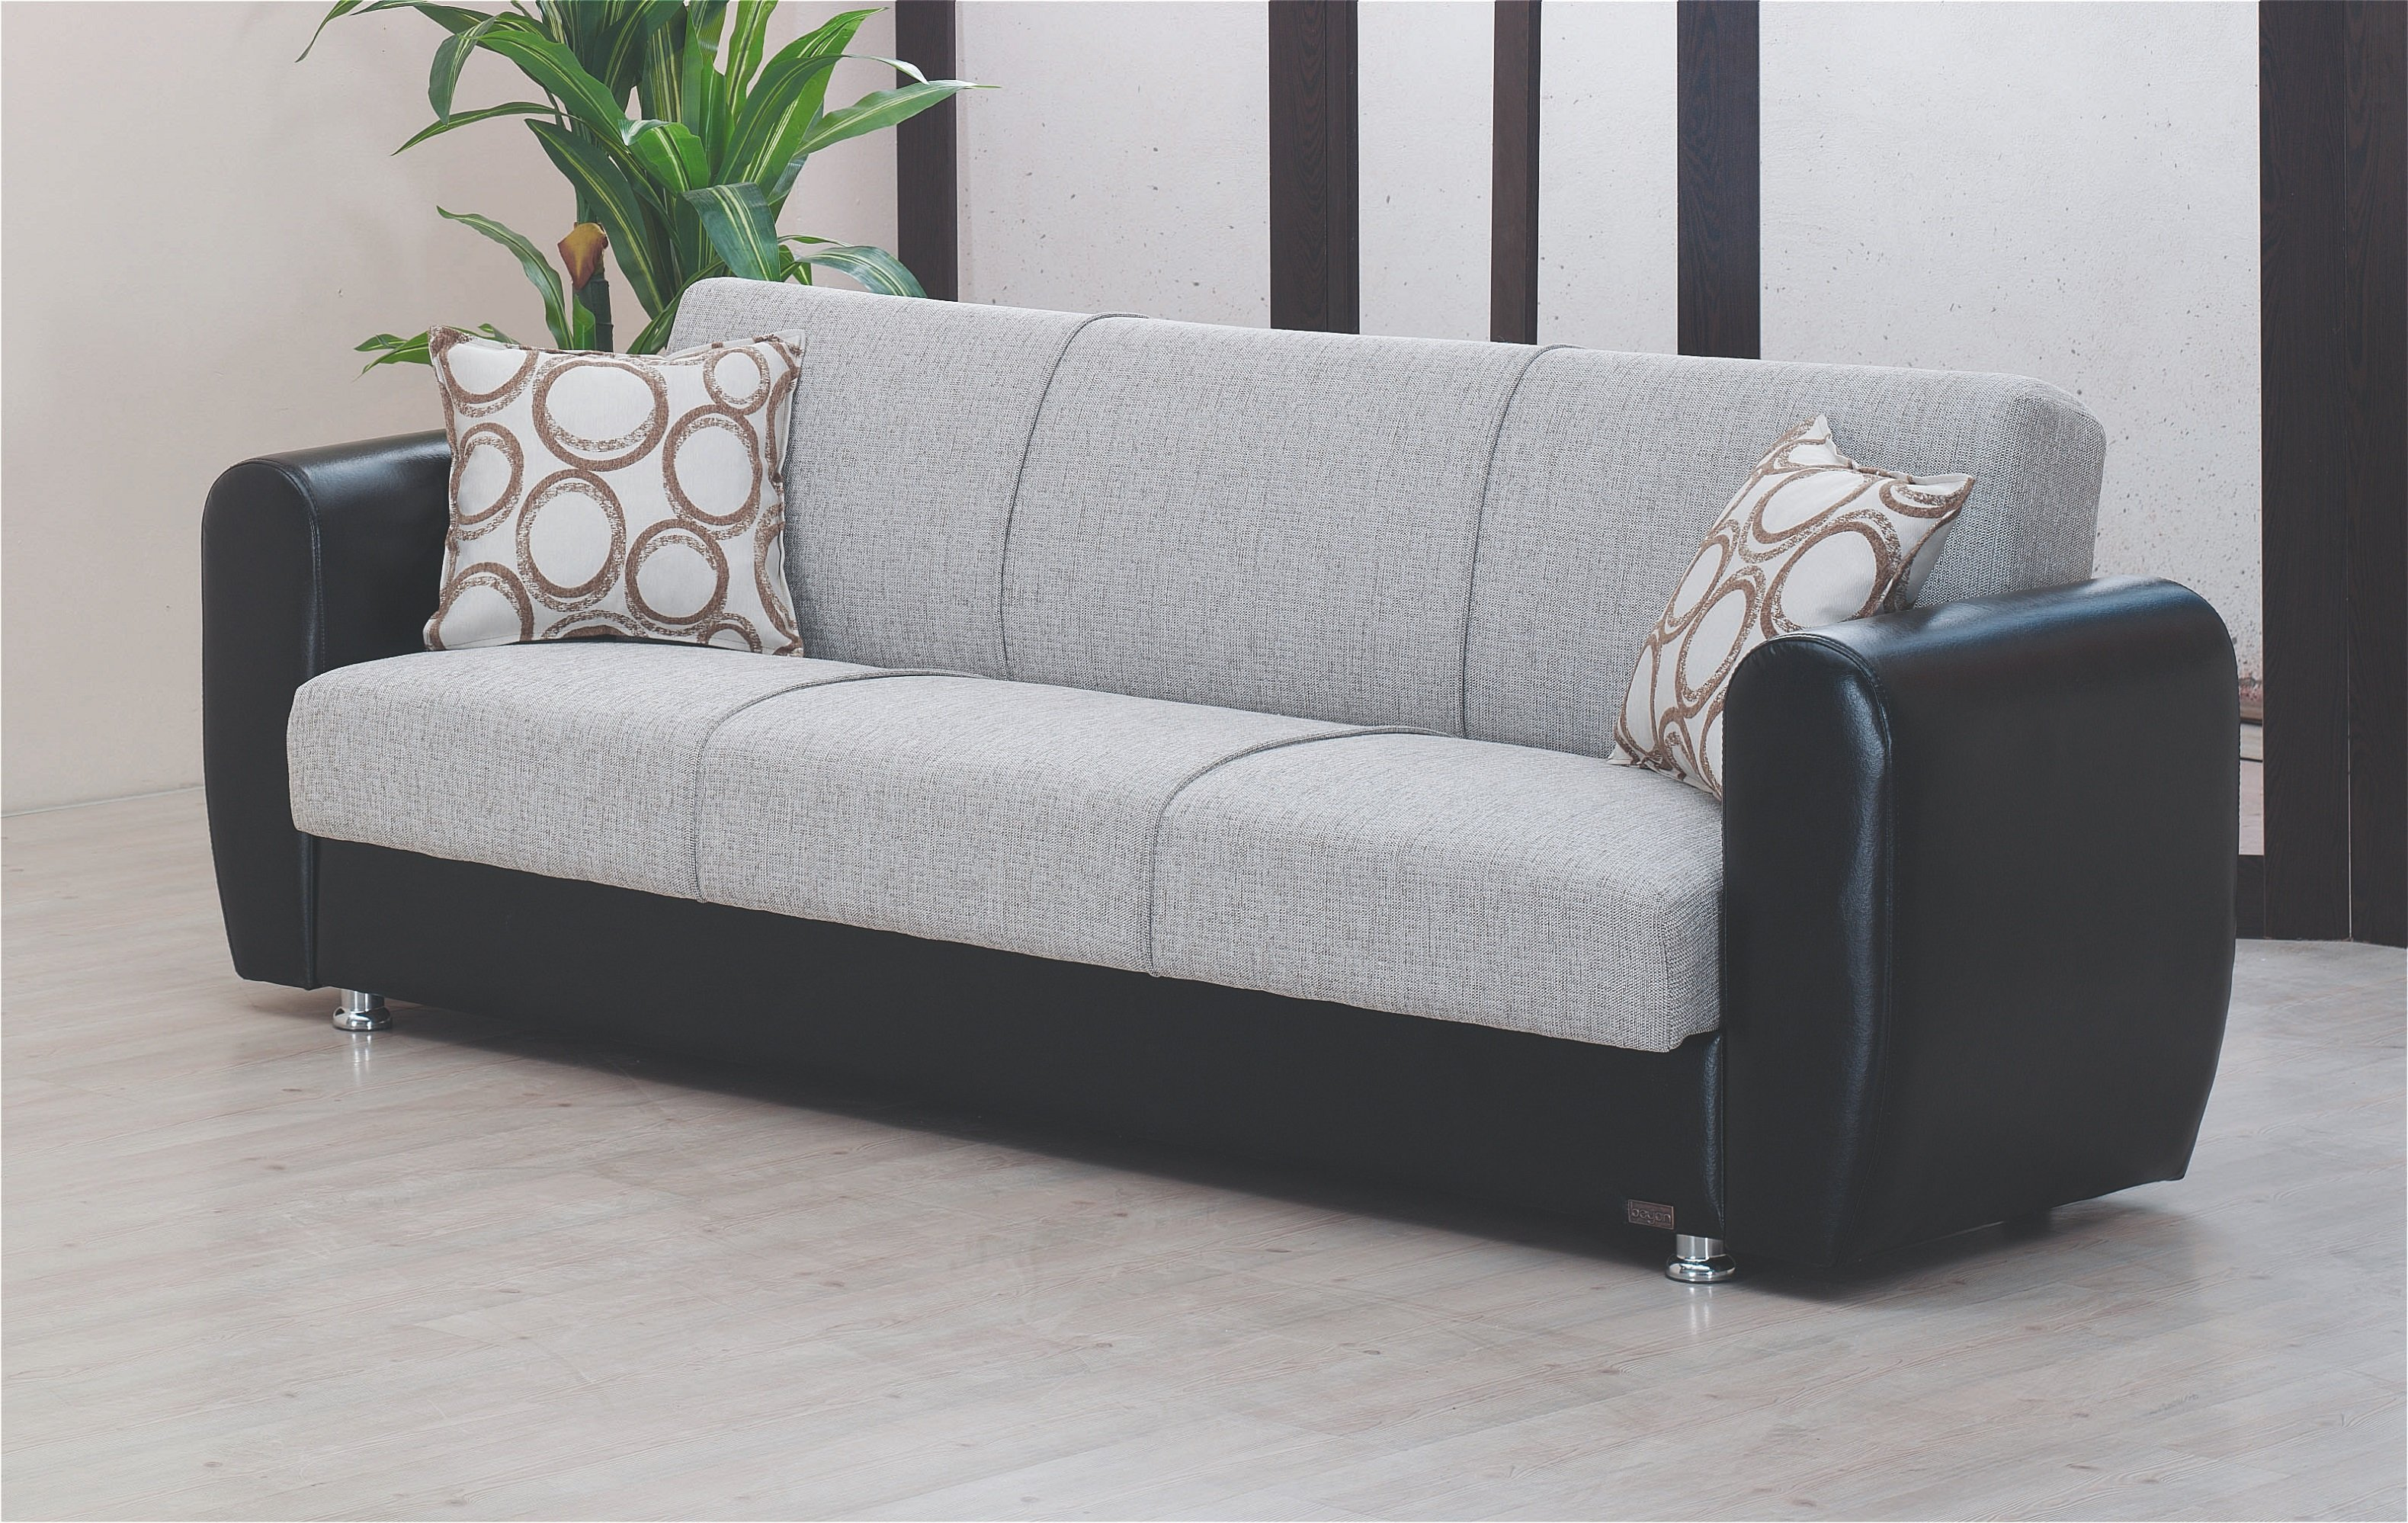 houston sofa bed by empire furniture usa rh futonland com chesterfield sofa for sale houston chesterfield sofa for sale houston texas